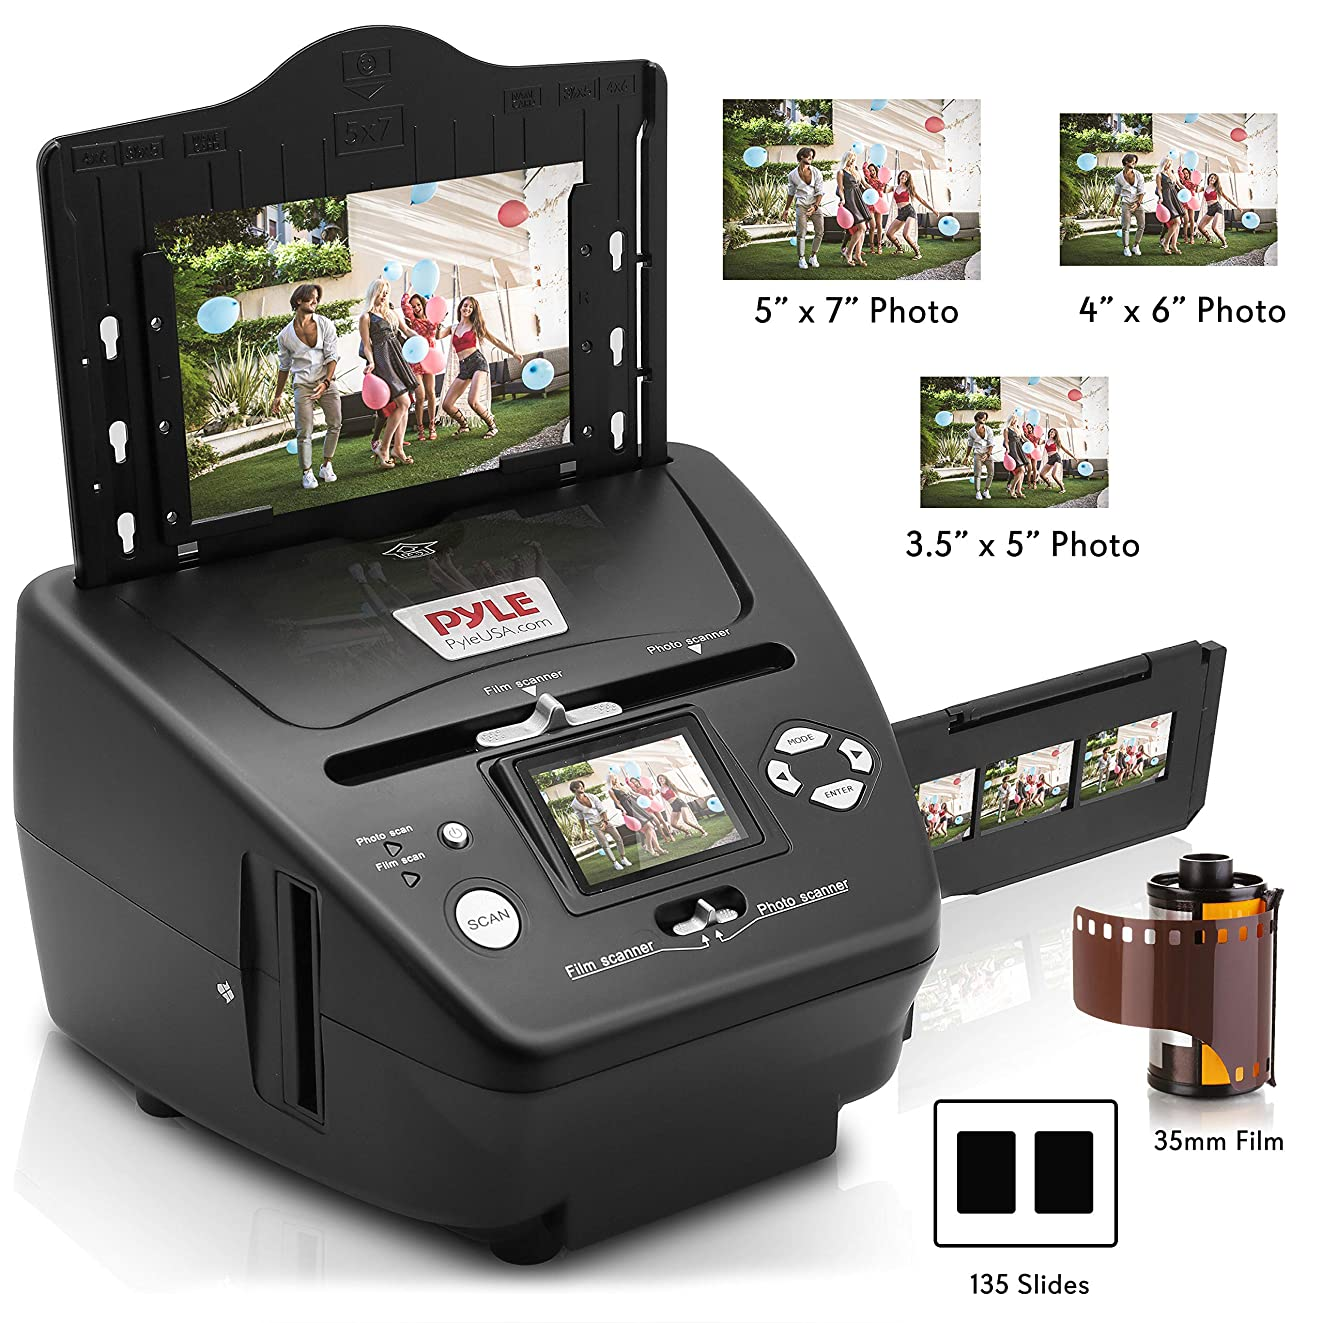 Digital 3-in-1 Photo, Slide and Film Scanner - Convert 35mm Film Negatives & Slides - With HD 5.1 MP - Digital LCD Screen, Easy to Use